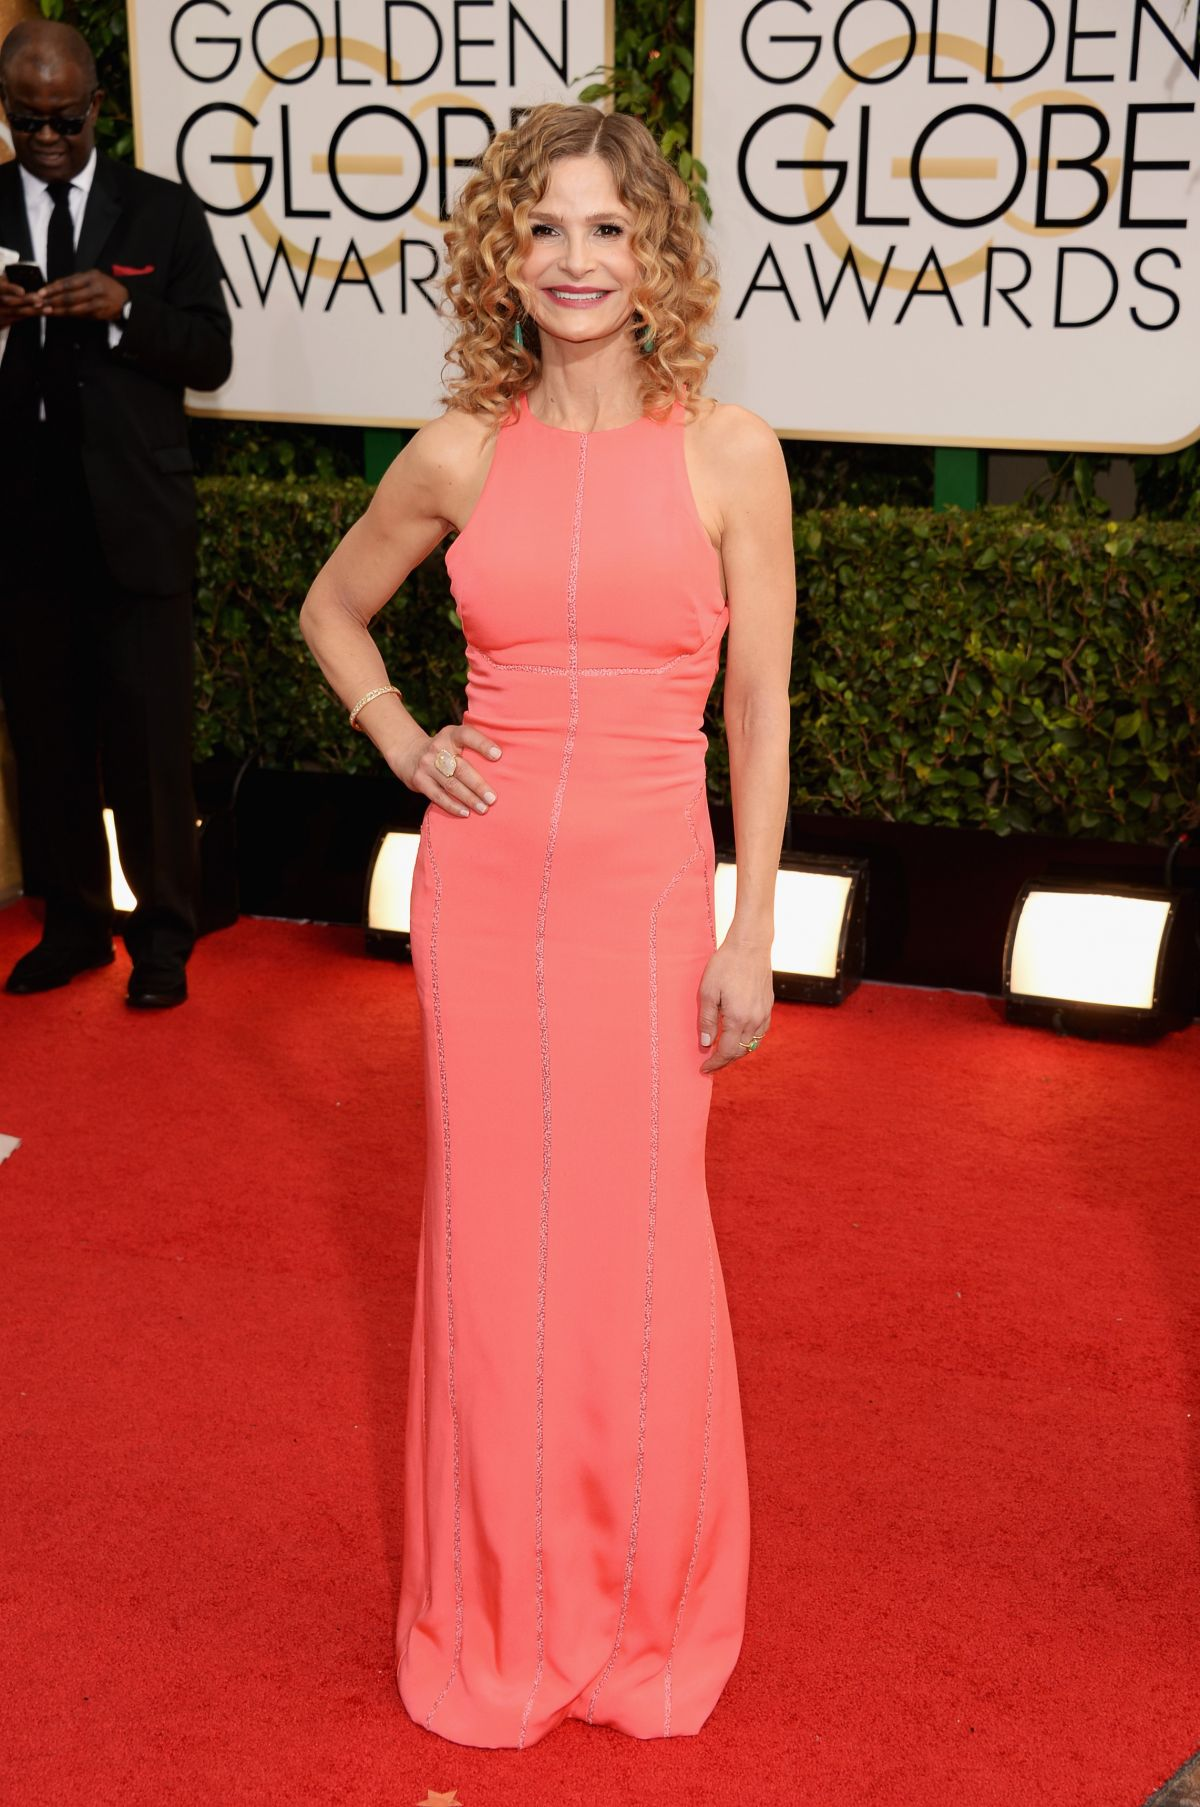 KYRA SEDGWICK  at 71st Annual Golden Globe Awards